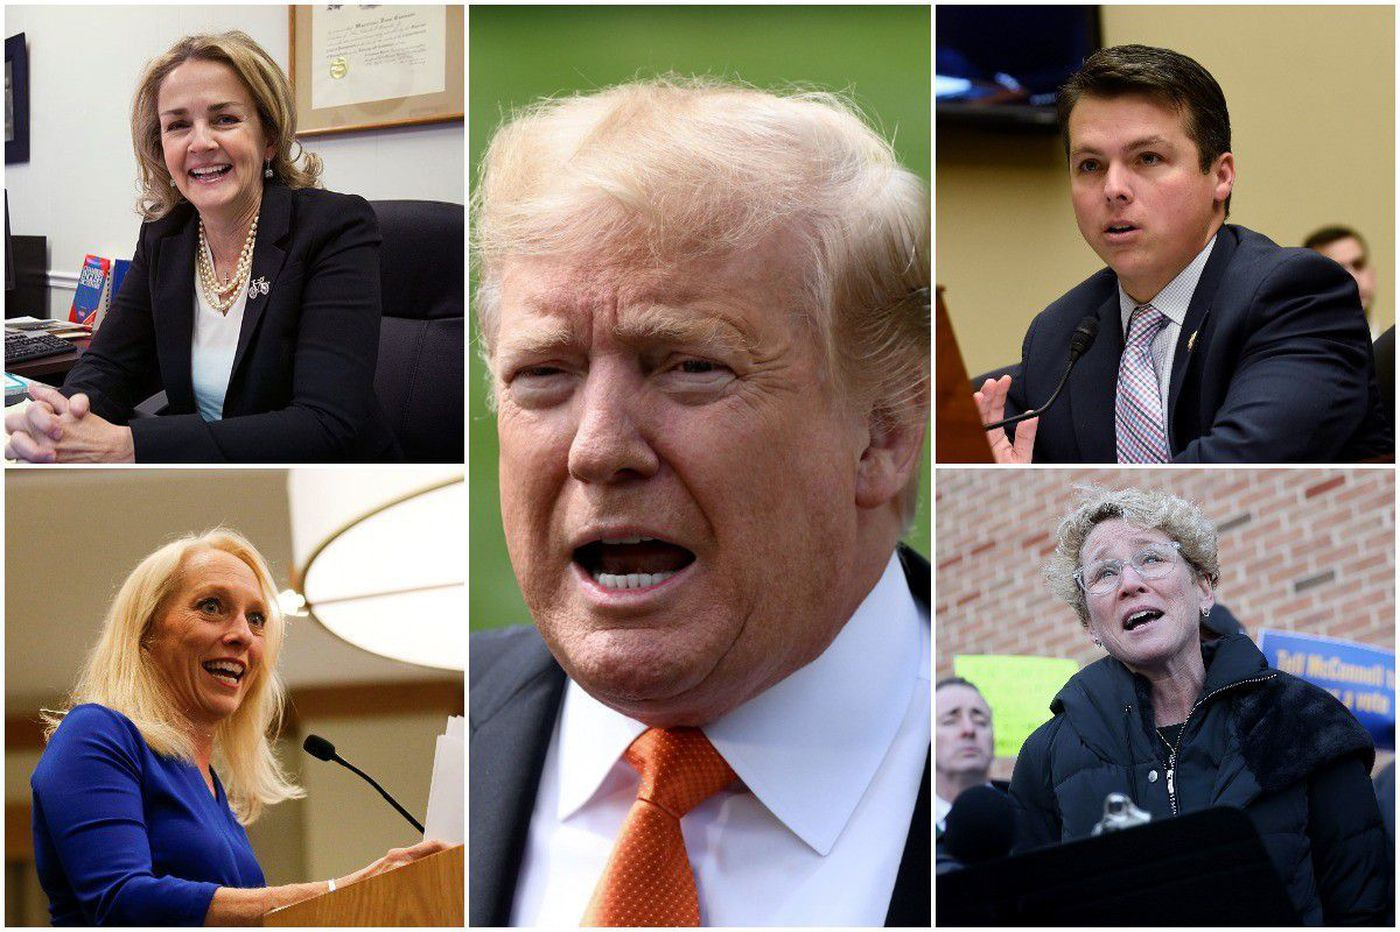 Southeast Pa. Democrats in Congress step carefully amid talk of impeachment   Clout